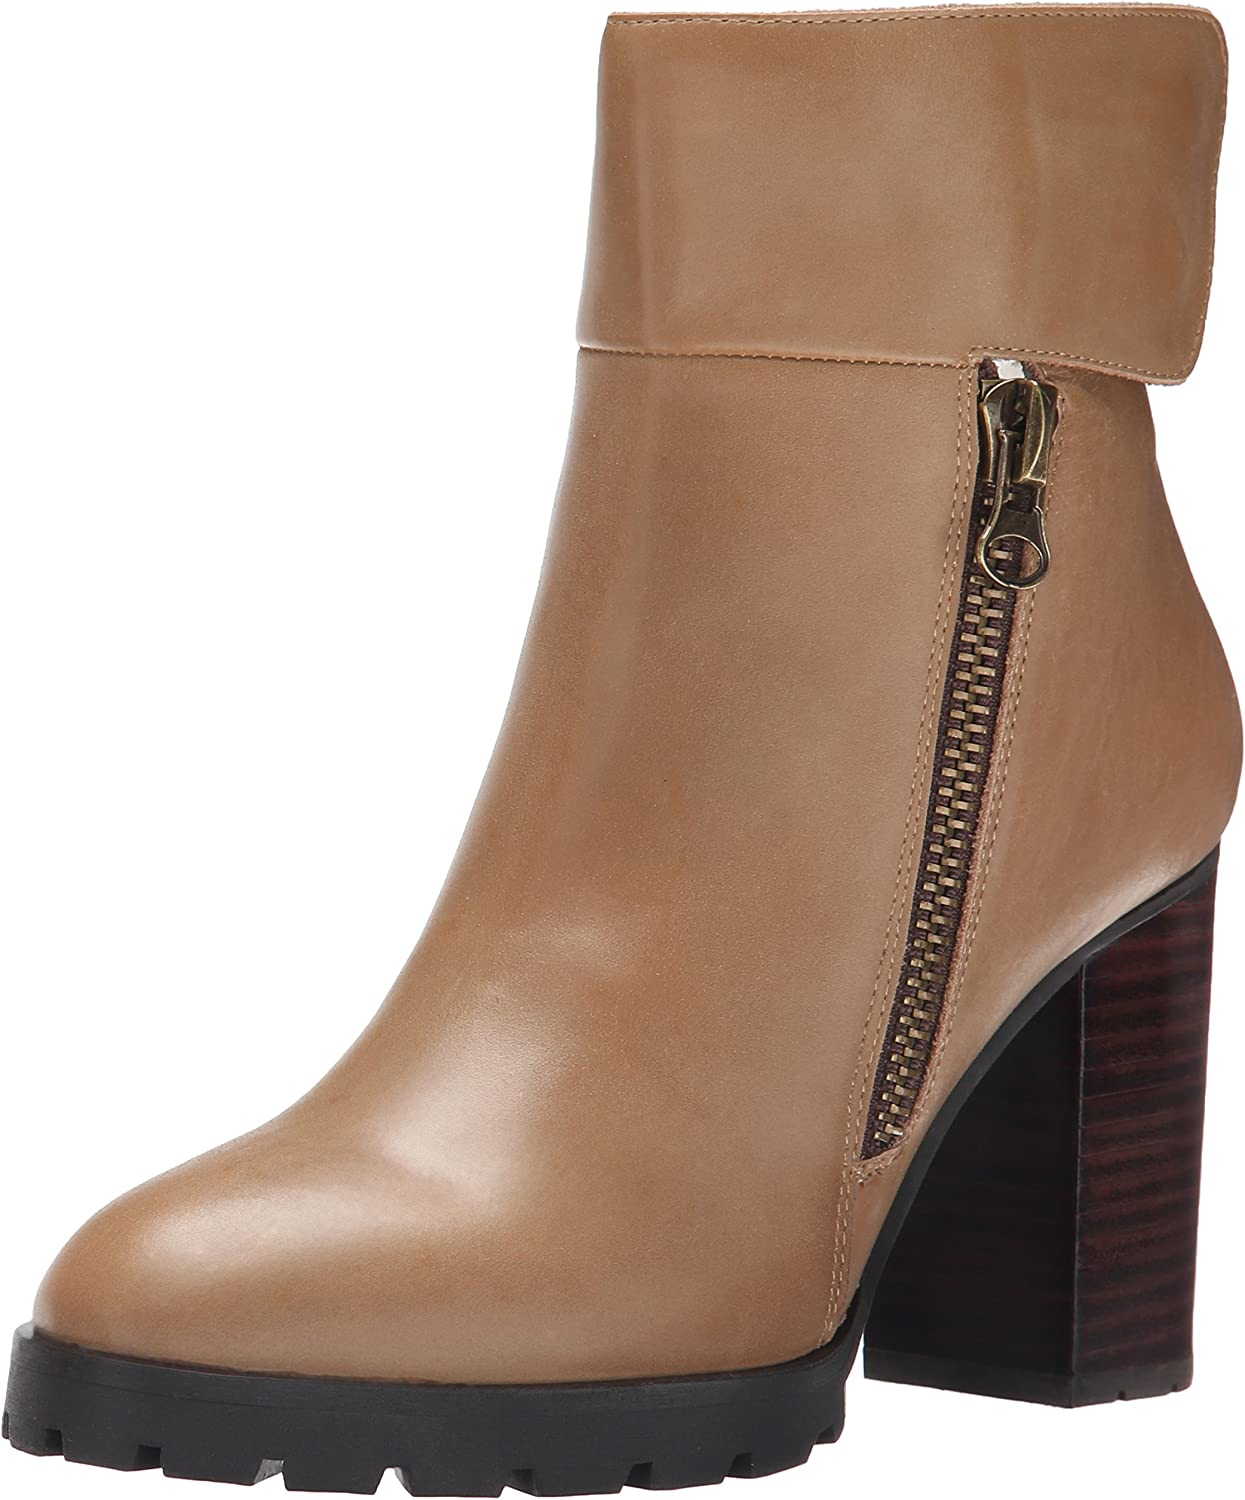 Sbicca Women's Cello Boot Tan